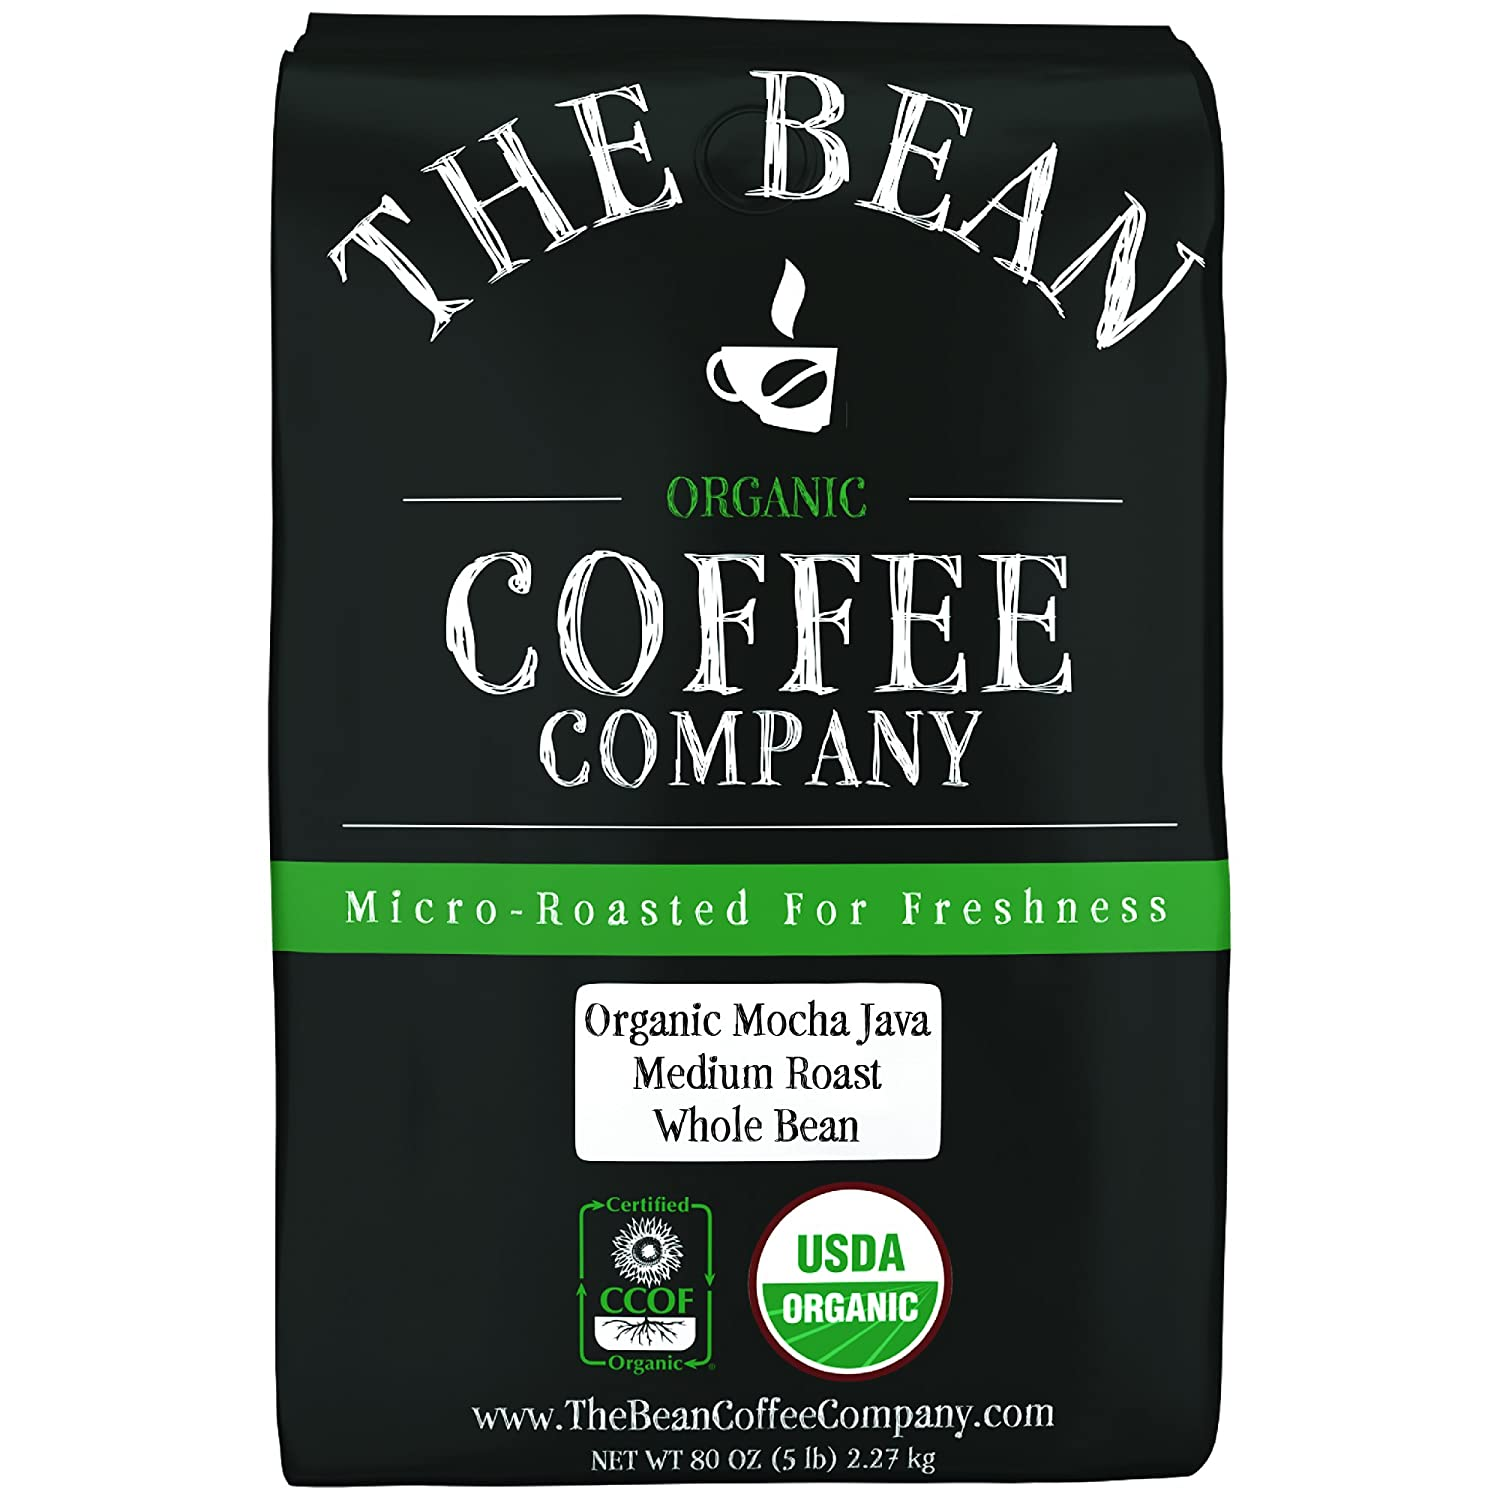 Forum on this topic: 8 Best Organic Coffee Brands You Should , 8-best-organic-coffee-brands-you-should/